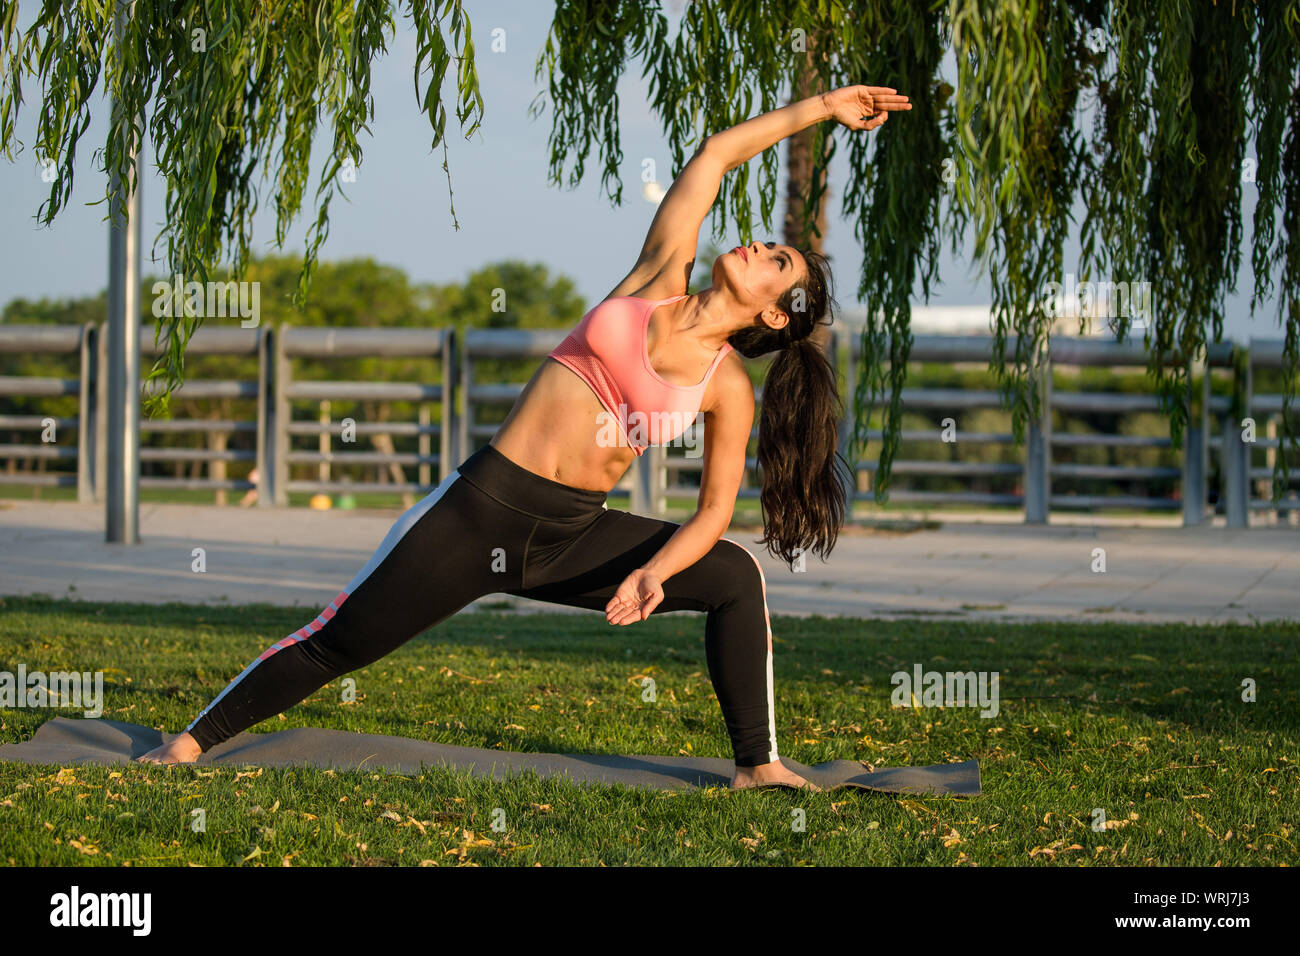 Latin Woman Does Yoga Exercises In A Park In Madrid Balance And Concentration Stock Photo Alamy